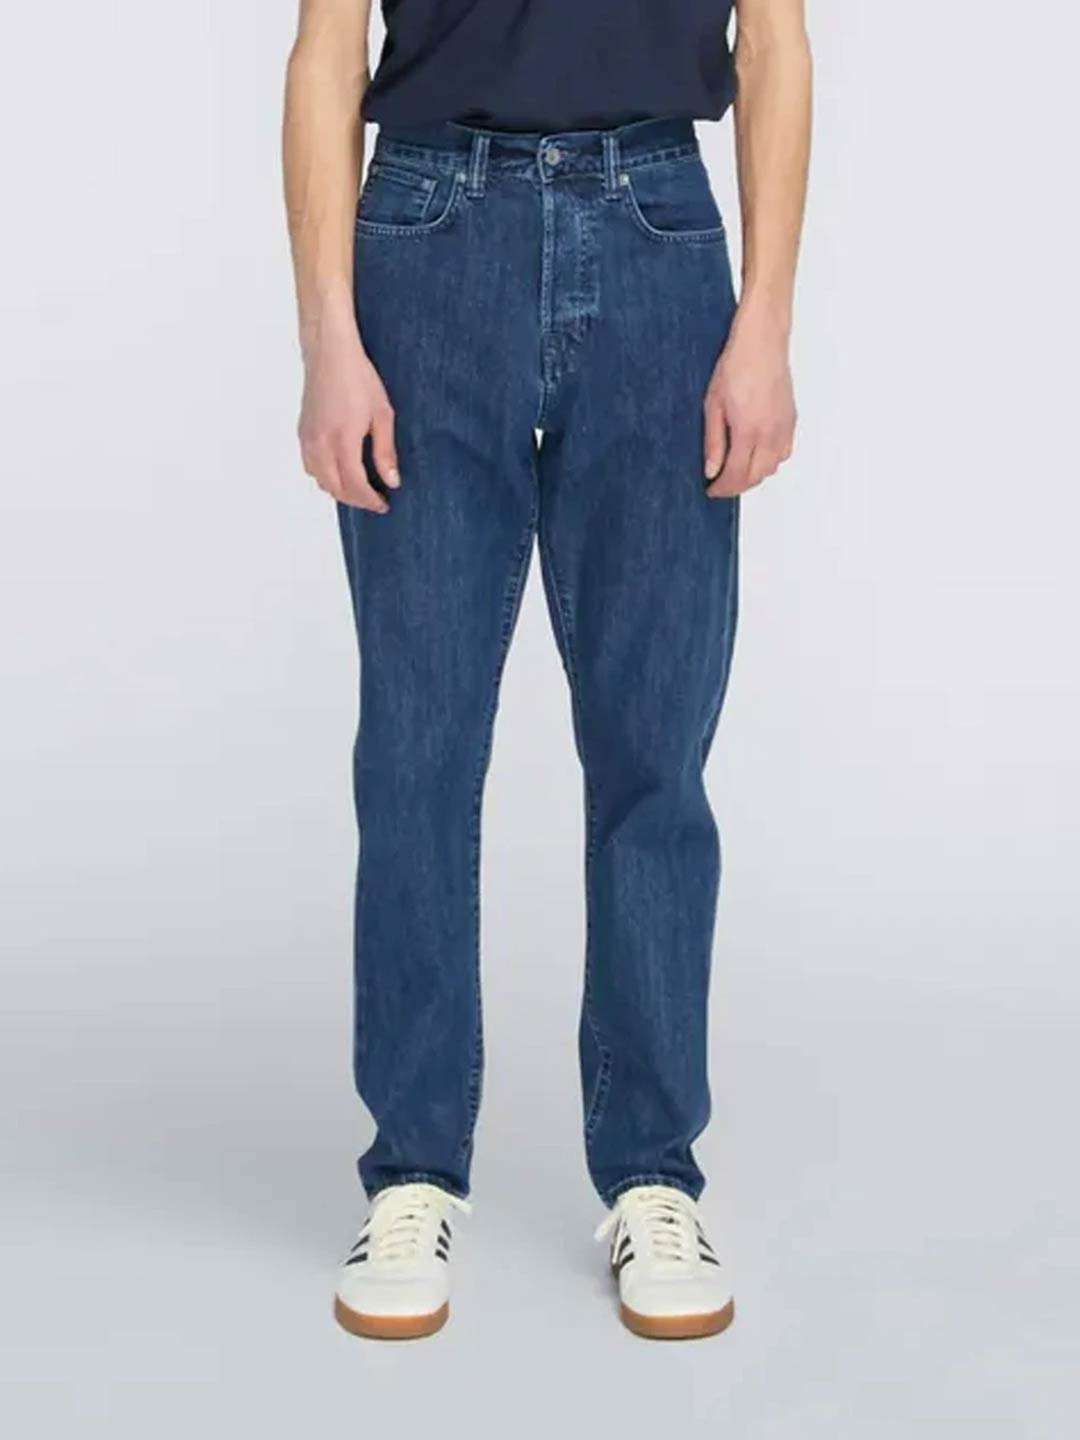 EDWIN ED-45 Loose Tapered Jeans - Revolver Menswear Bawtry